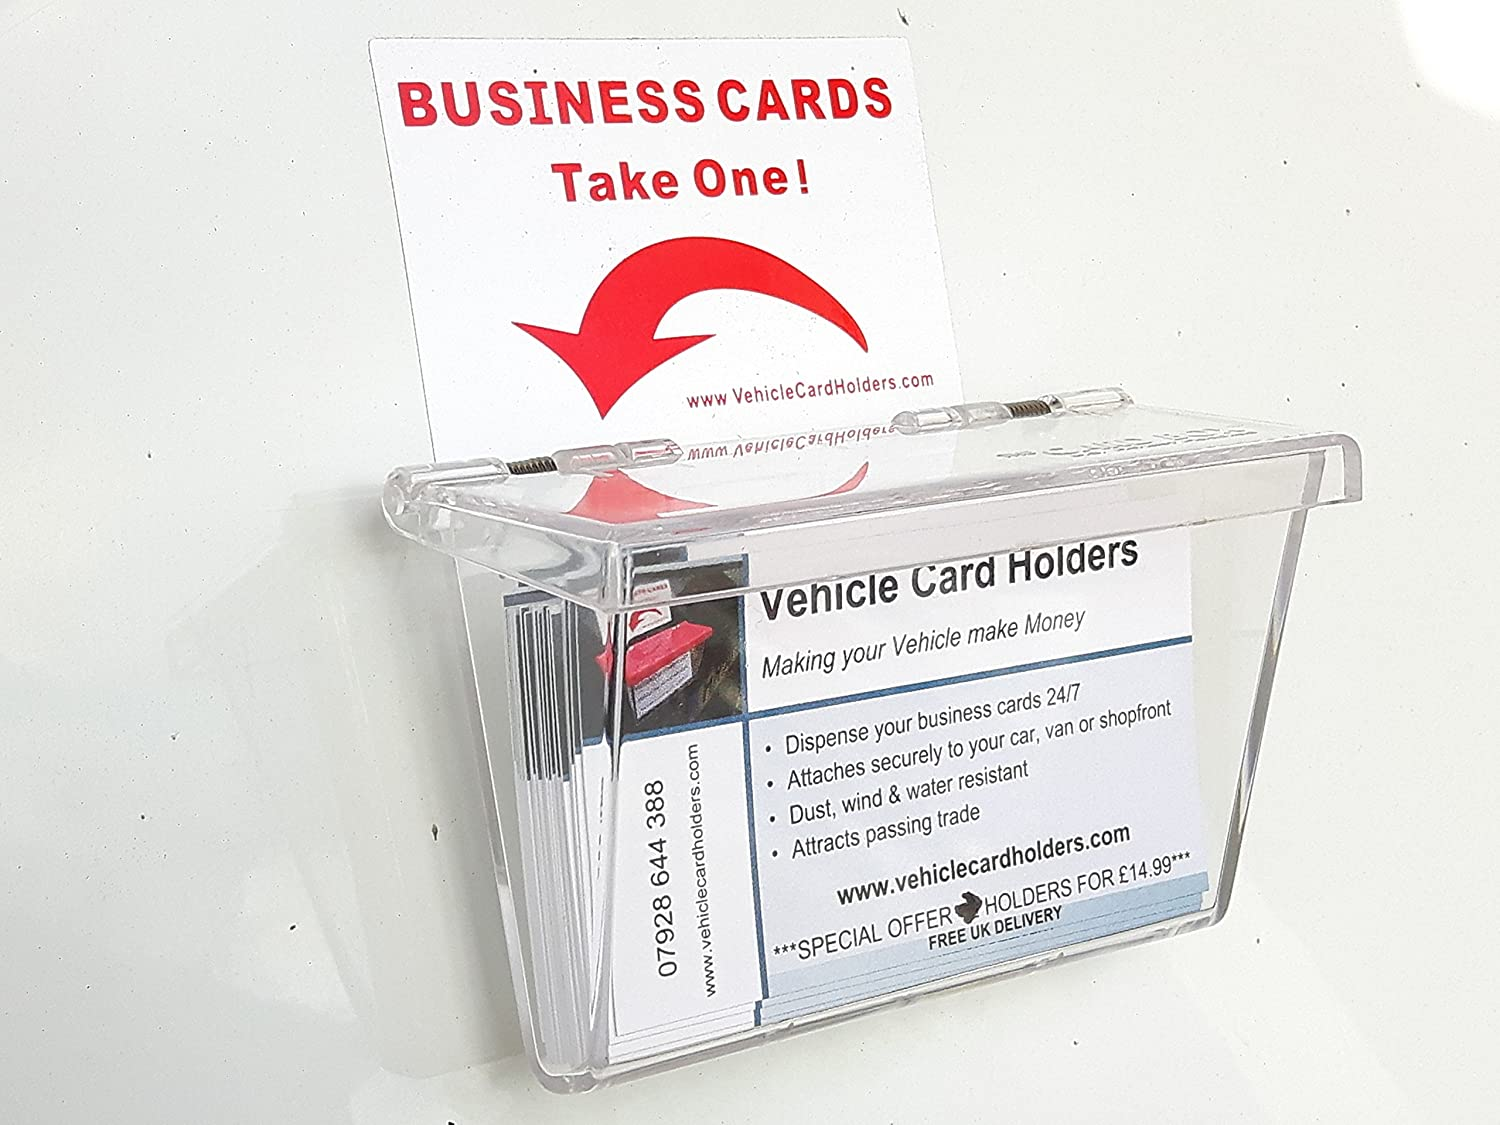 Outdoor Vehicle Business Card Holder Box: Amazon.co.uk: Clothing